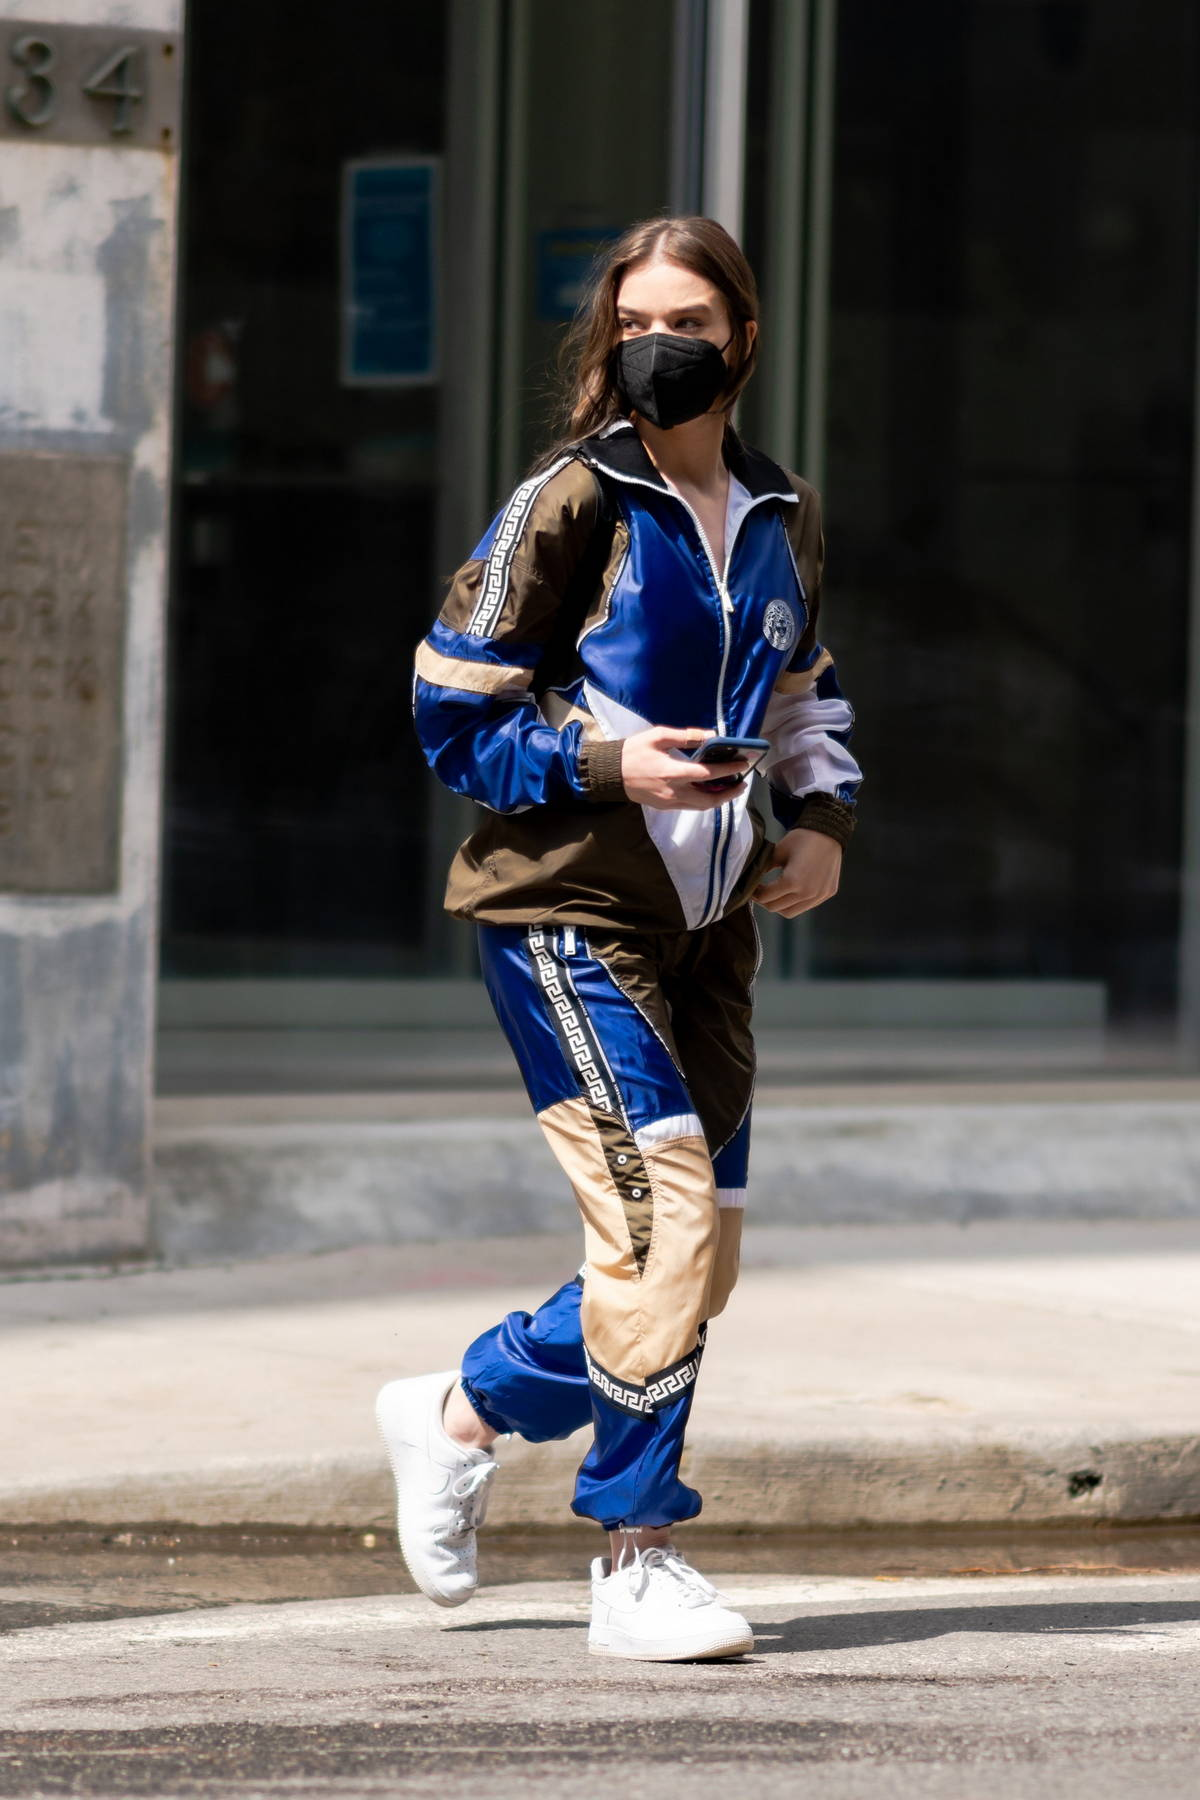 Hailee Steinfeld looks stylish in a Versace tracksuit as she steps out in New York City